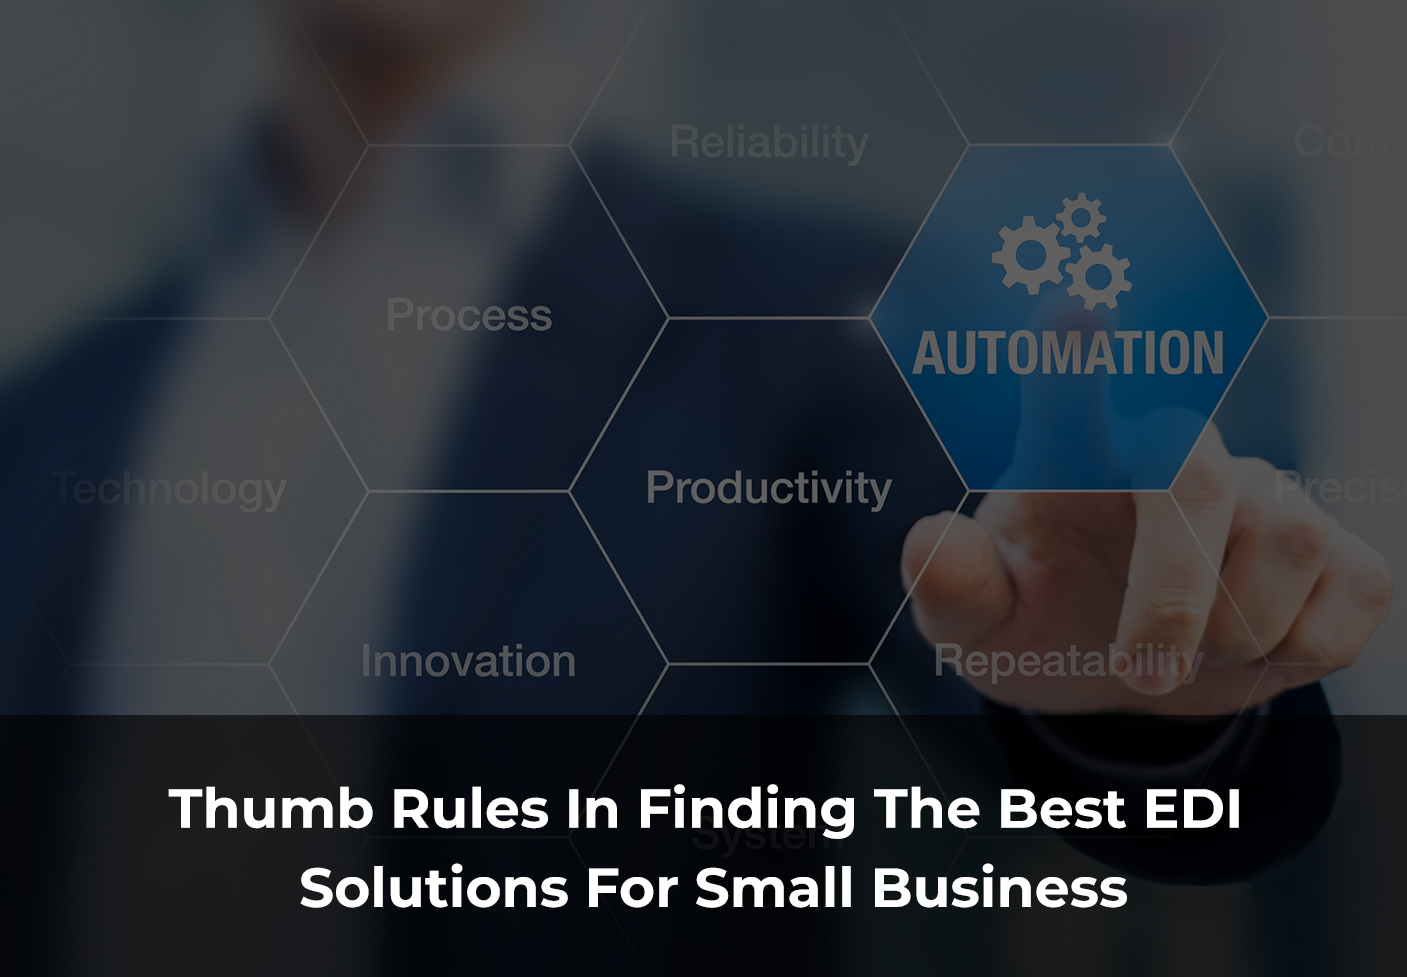 Thumb-Rules-In-Finding-The-Best-EDI-Solutions-For-Small-Business